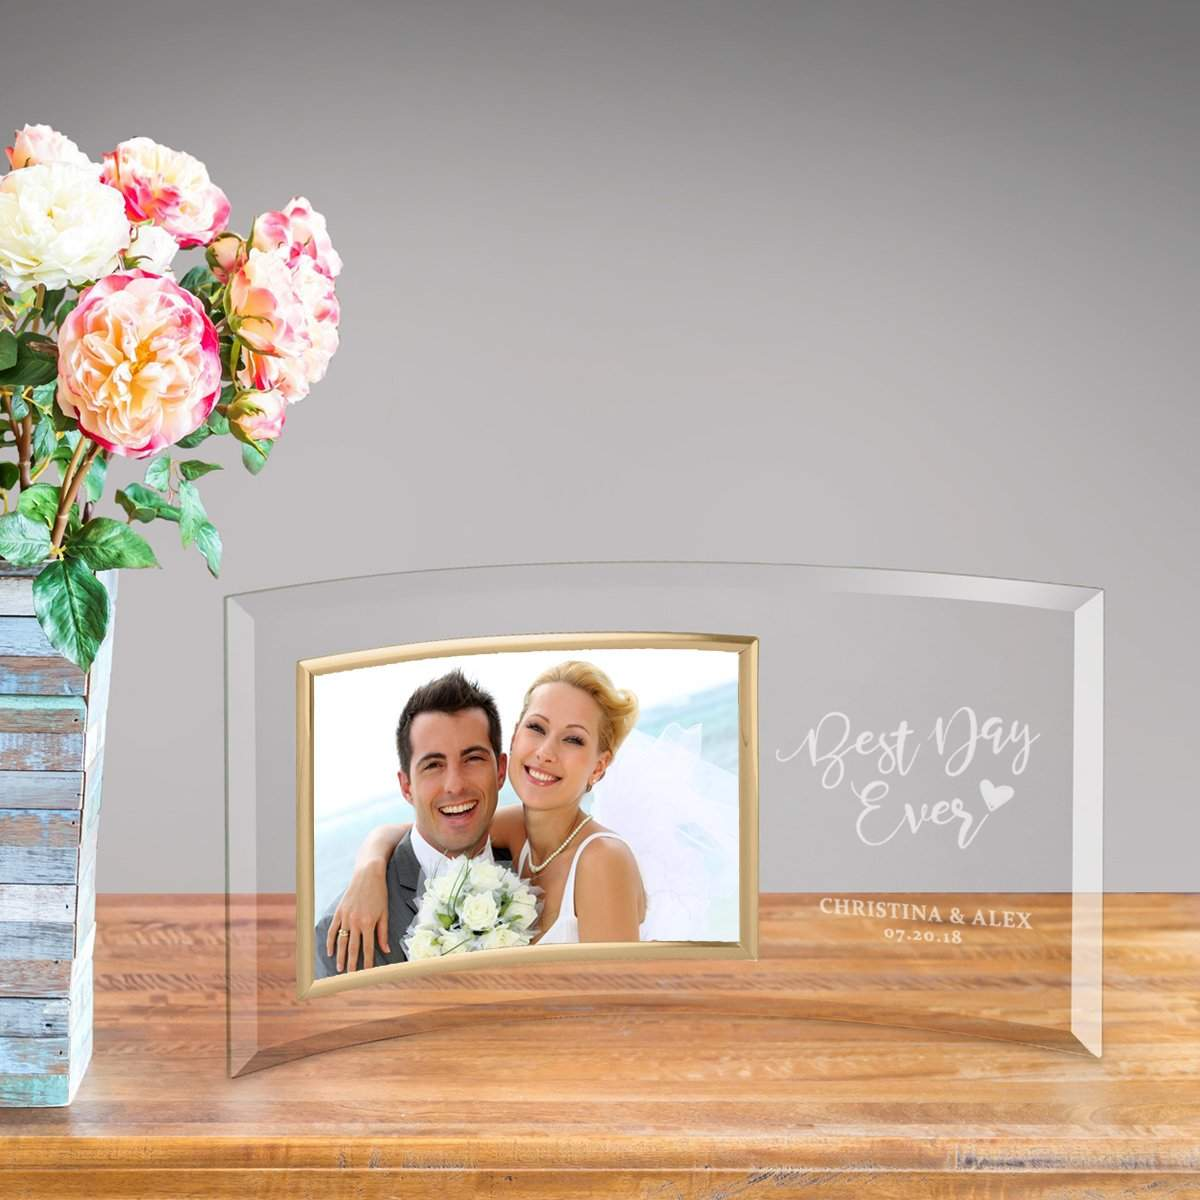 Personalized Best Day Ever Glass Photo Frame